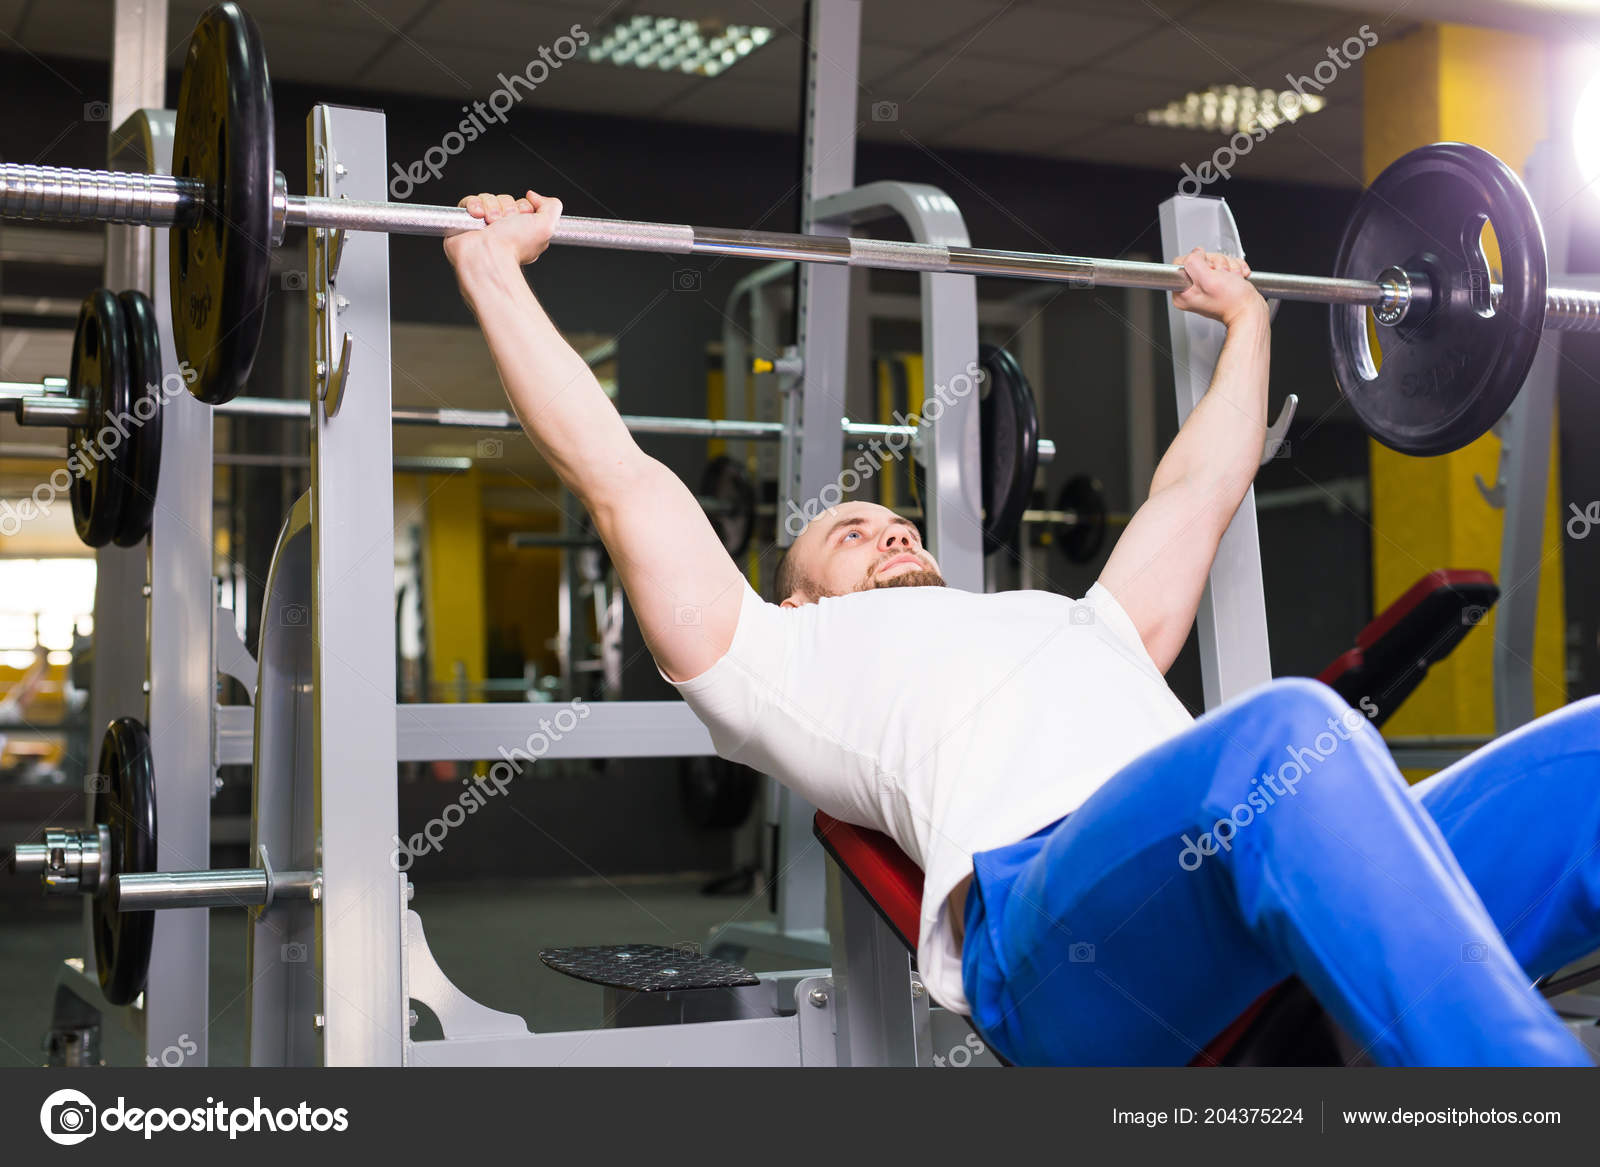 Sport Fitness Training And People Concept Man During Bench Press